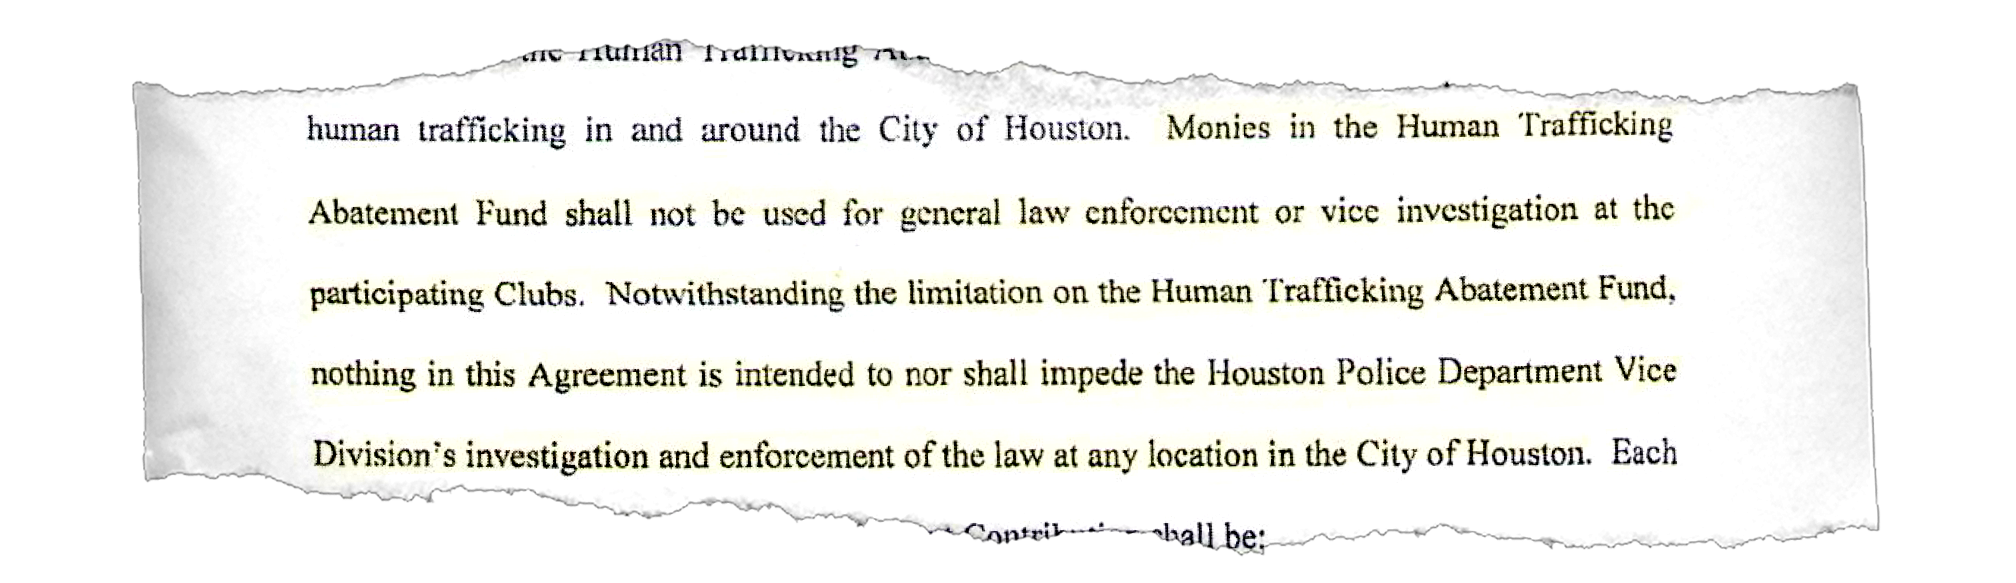 Monies in the Human Trafficking Abatement Fund shall not be used for general law enforcement or vice investigation at the participating Clubs. Notwithstanding the limitation on the Human Trafficking Abatement Fund, nothing in this Agreement is intended to nor shall impede the Houston Police Department Vice Division's investigation and enforcement of the law at any location in the City of Houston.""